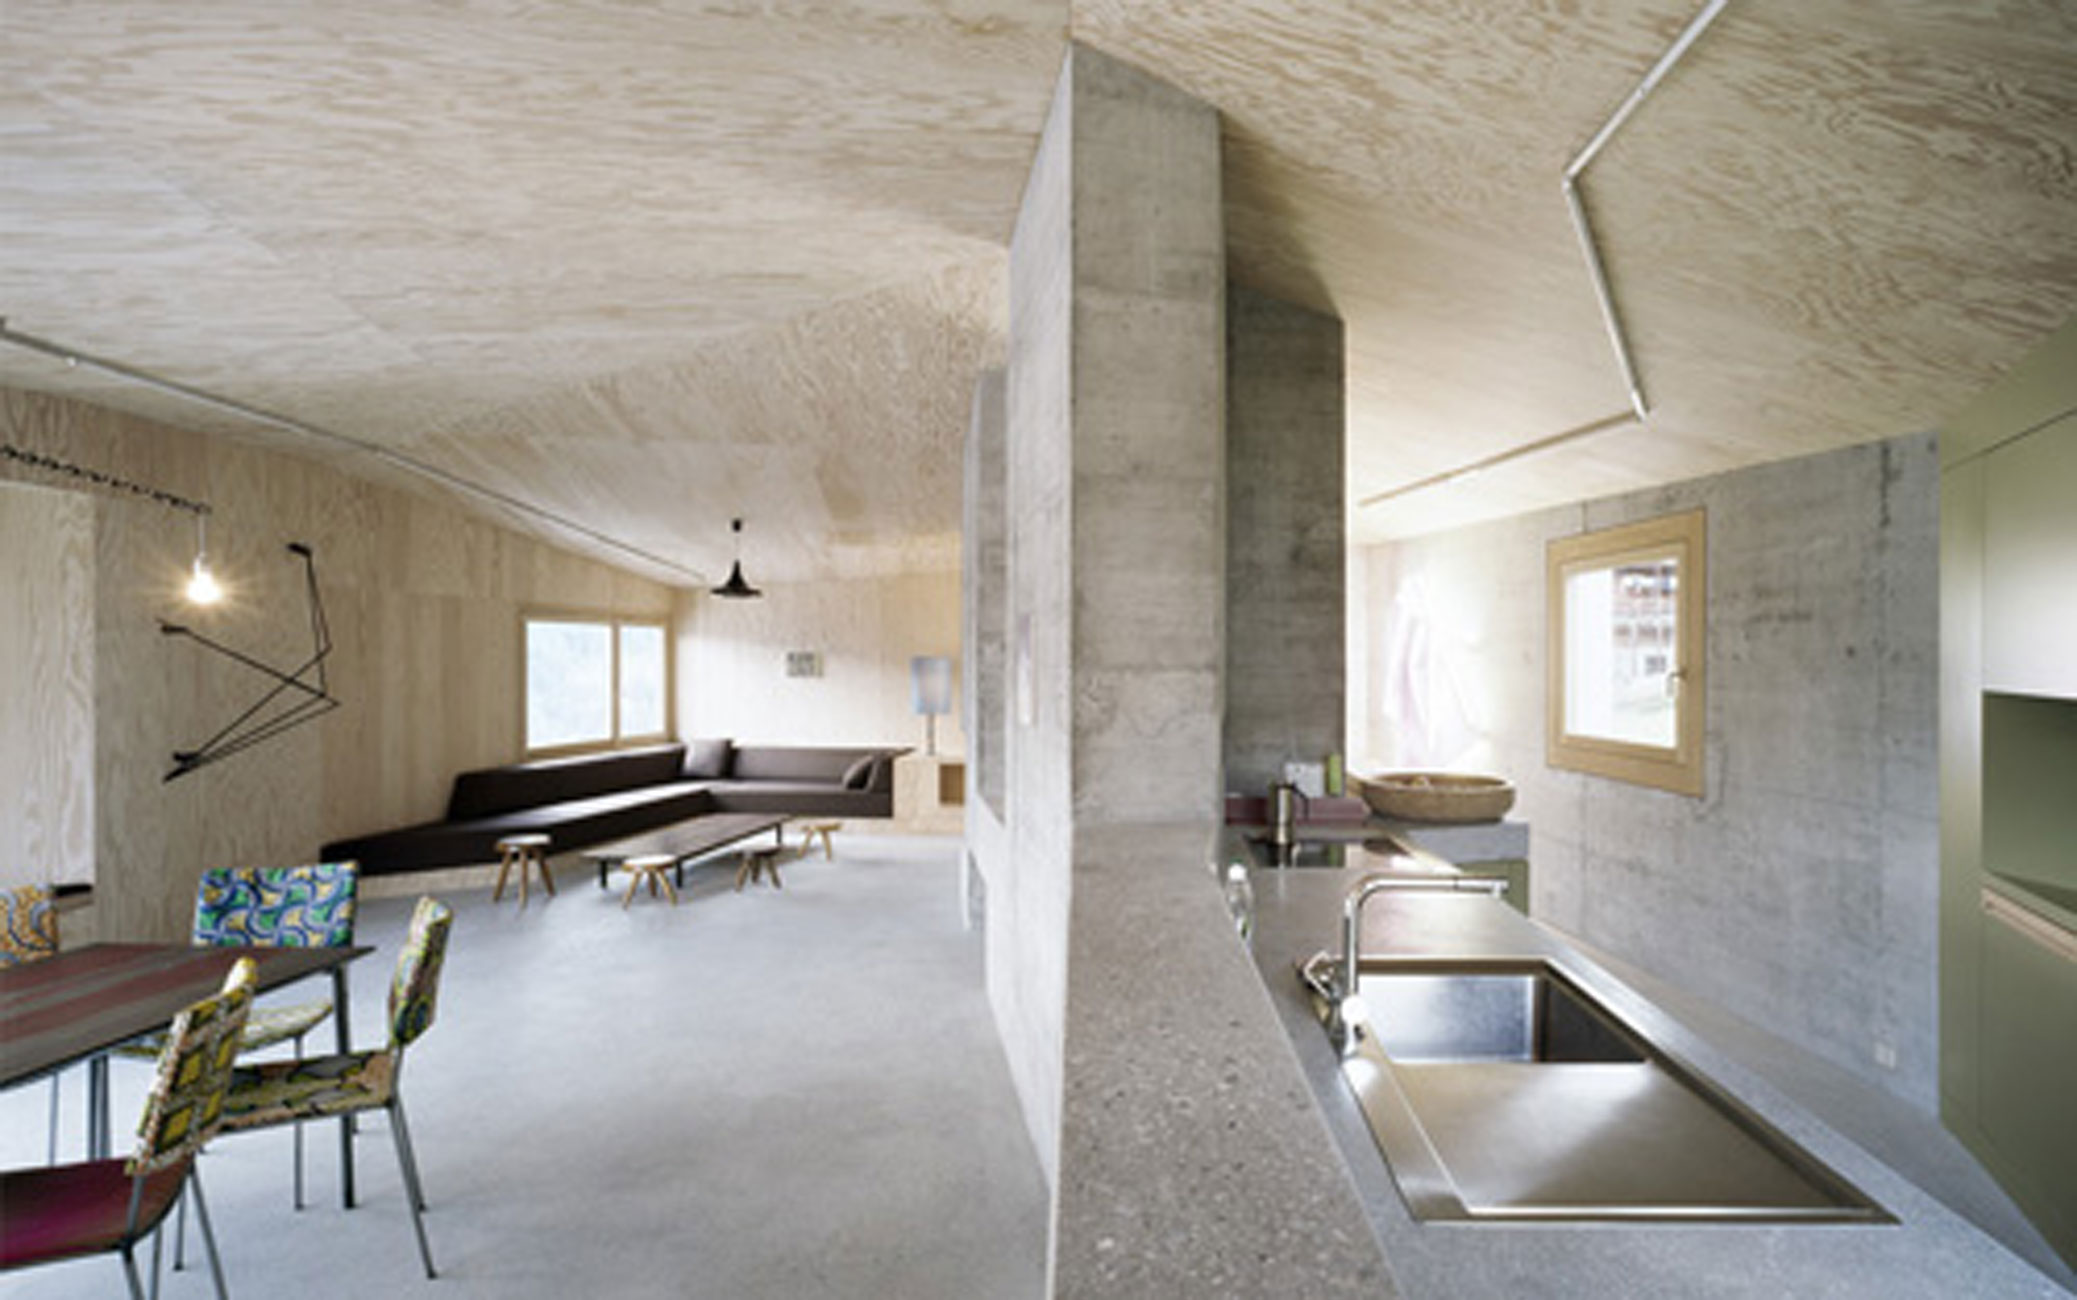 Solid concrete house architecture and minimalist interior design in berlin kitchen